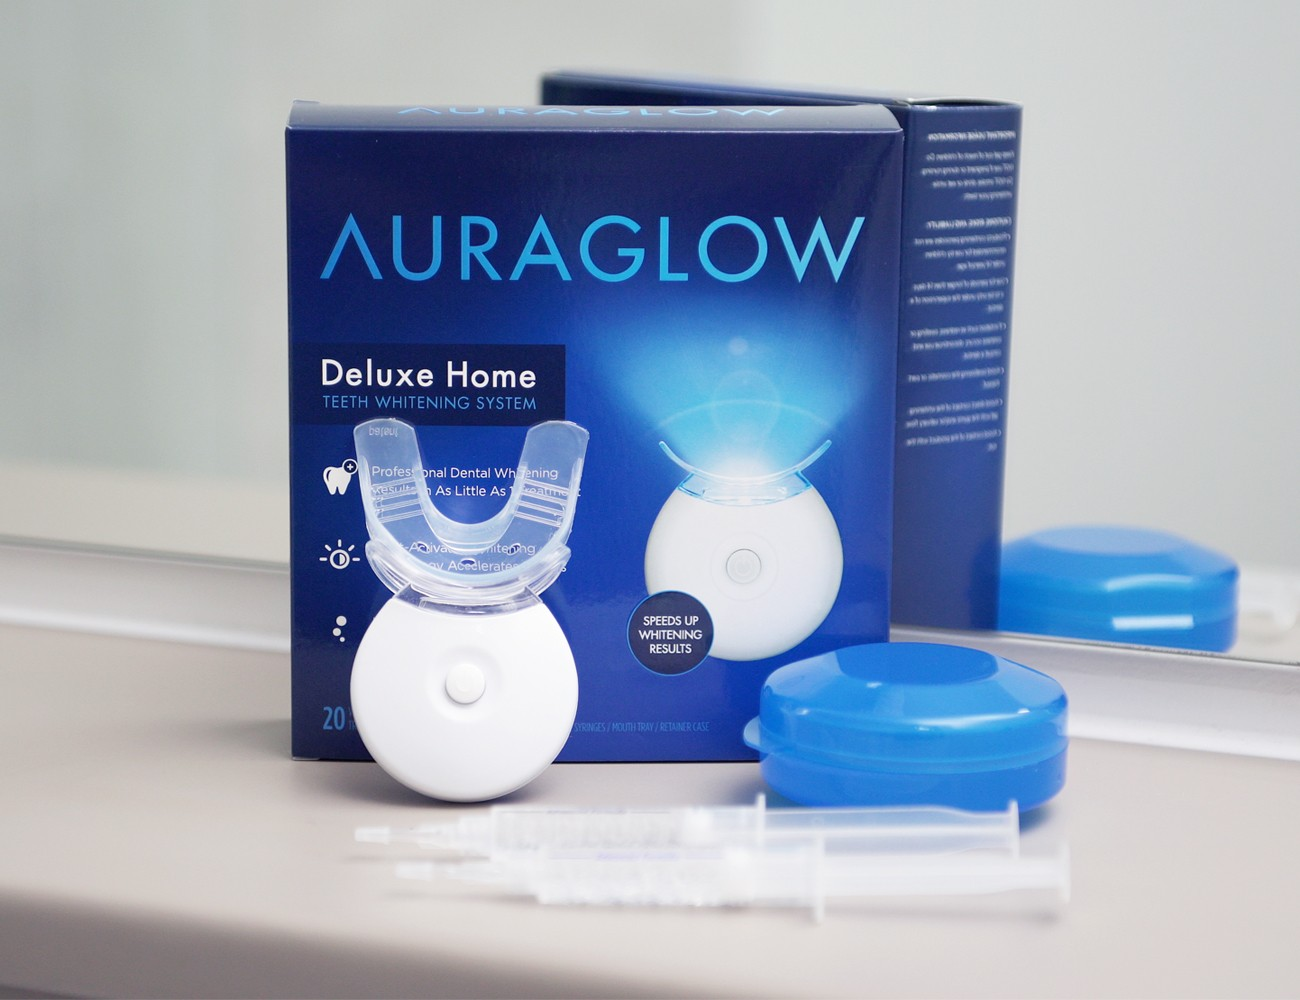 AuraGlow Home Teeth Whitening System